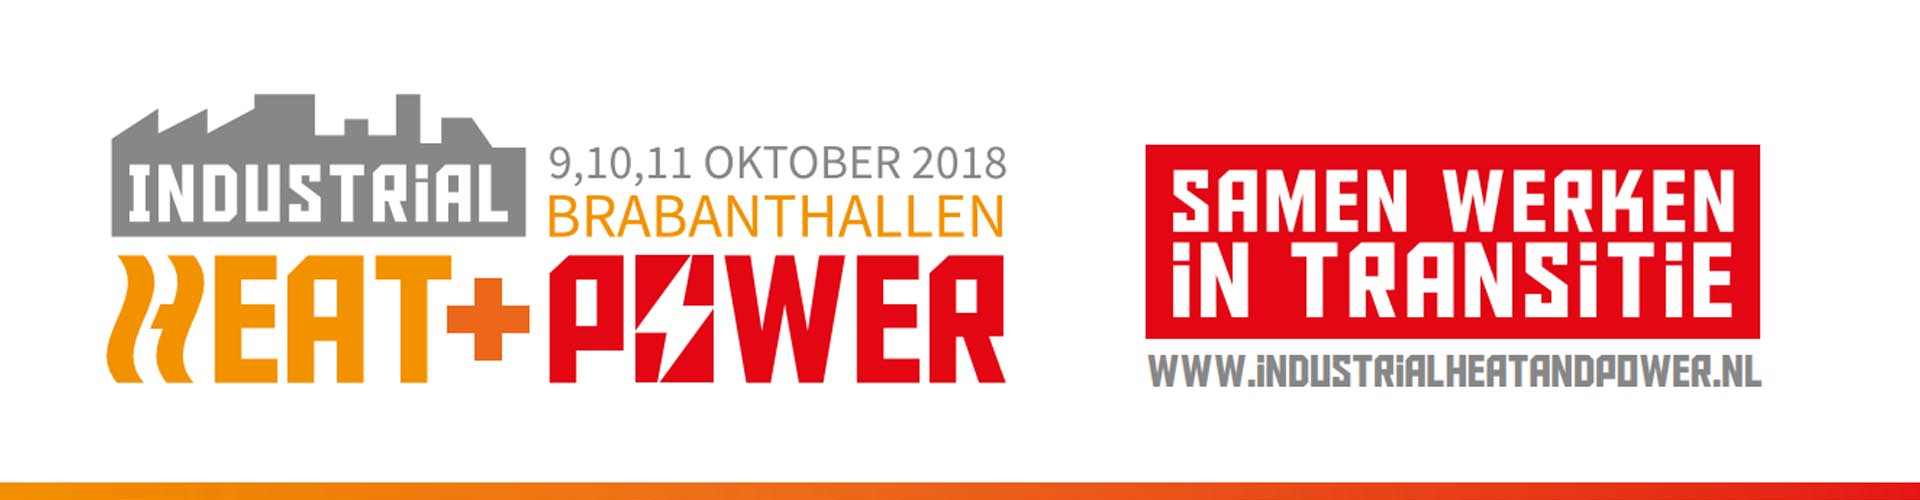 Elco Burners Industrial Heat & Power beurs (Den Bosch - 9,10,11 oktober)